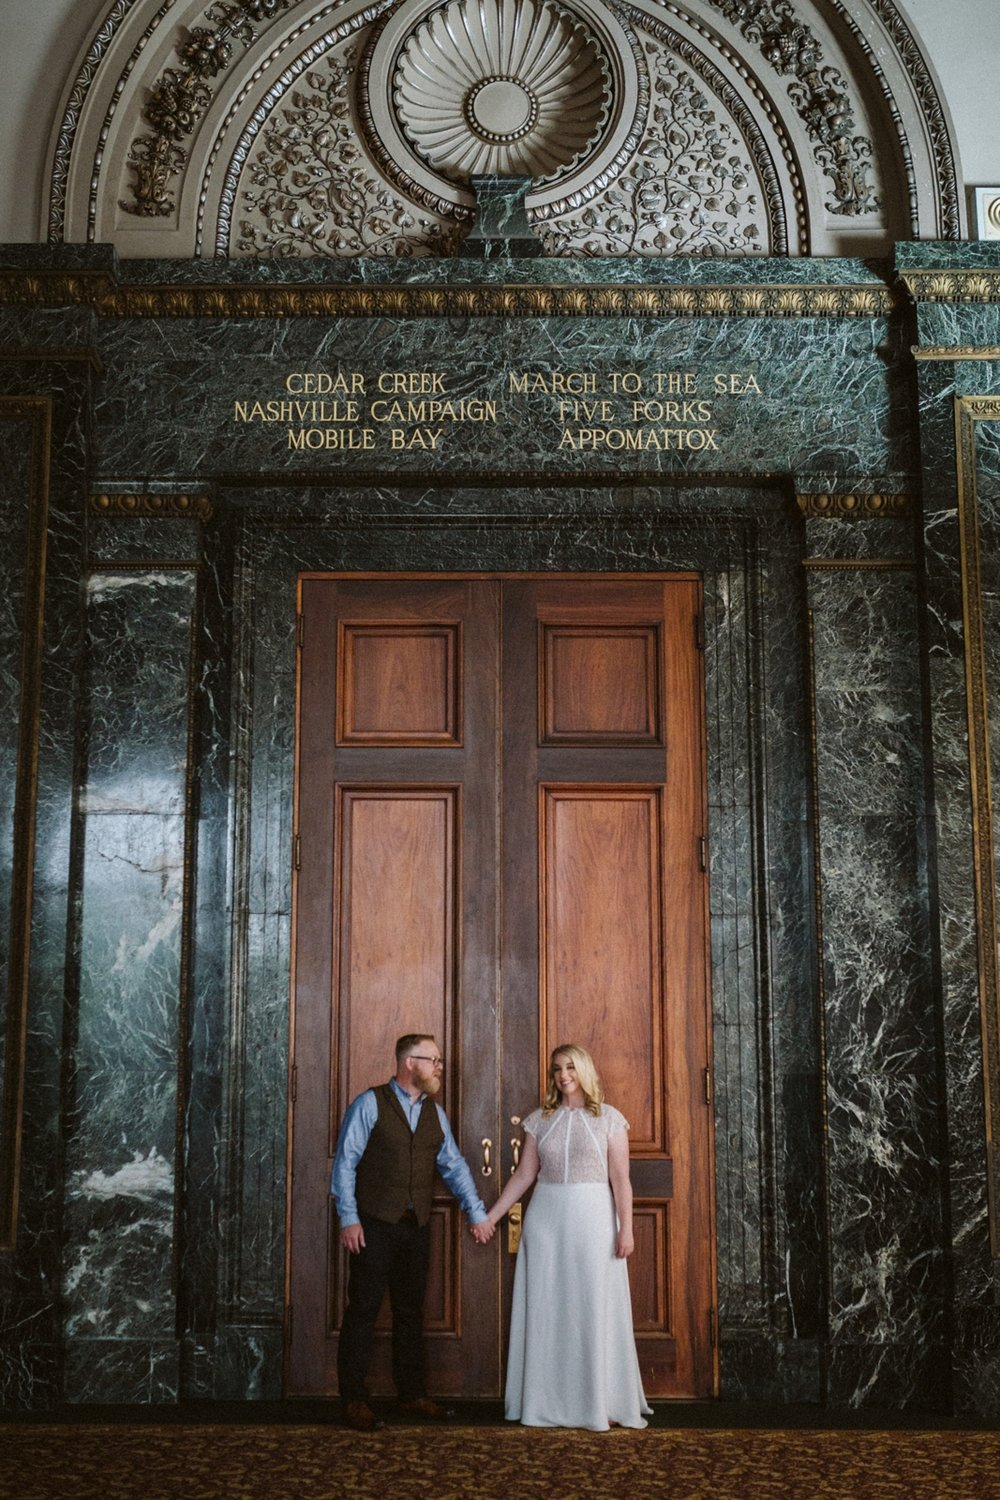 Chicago Cultural Center weddings | intimate wedding photographer | lisa kathan photography